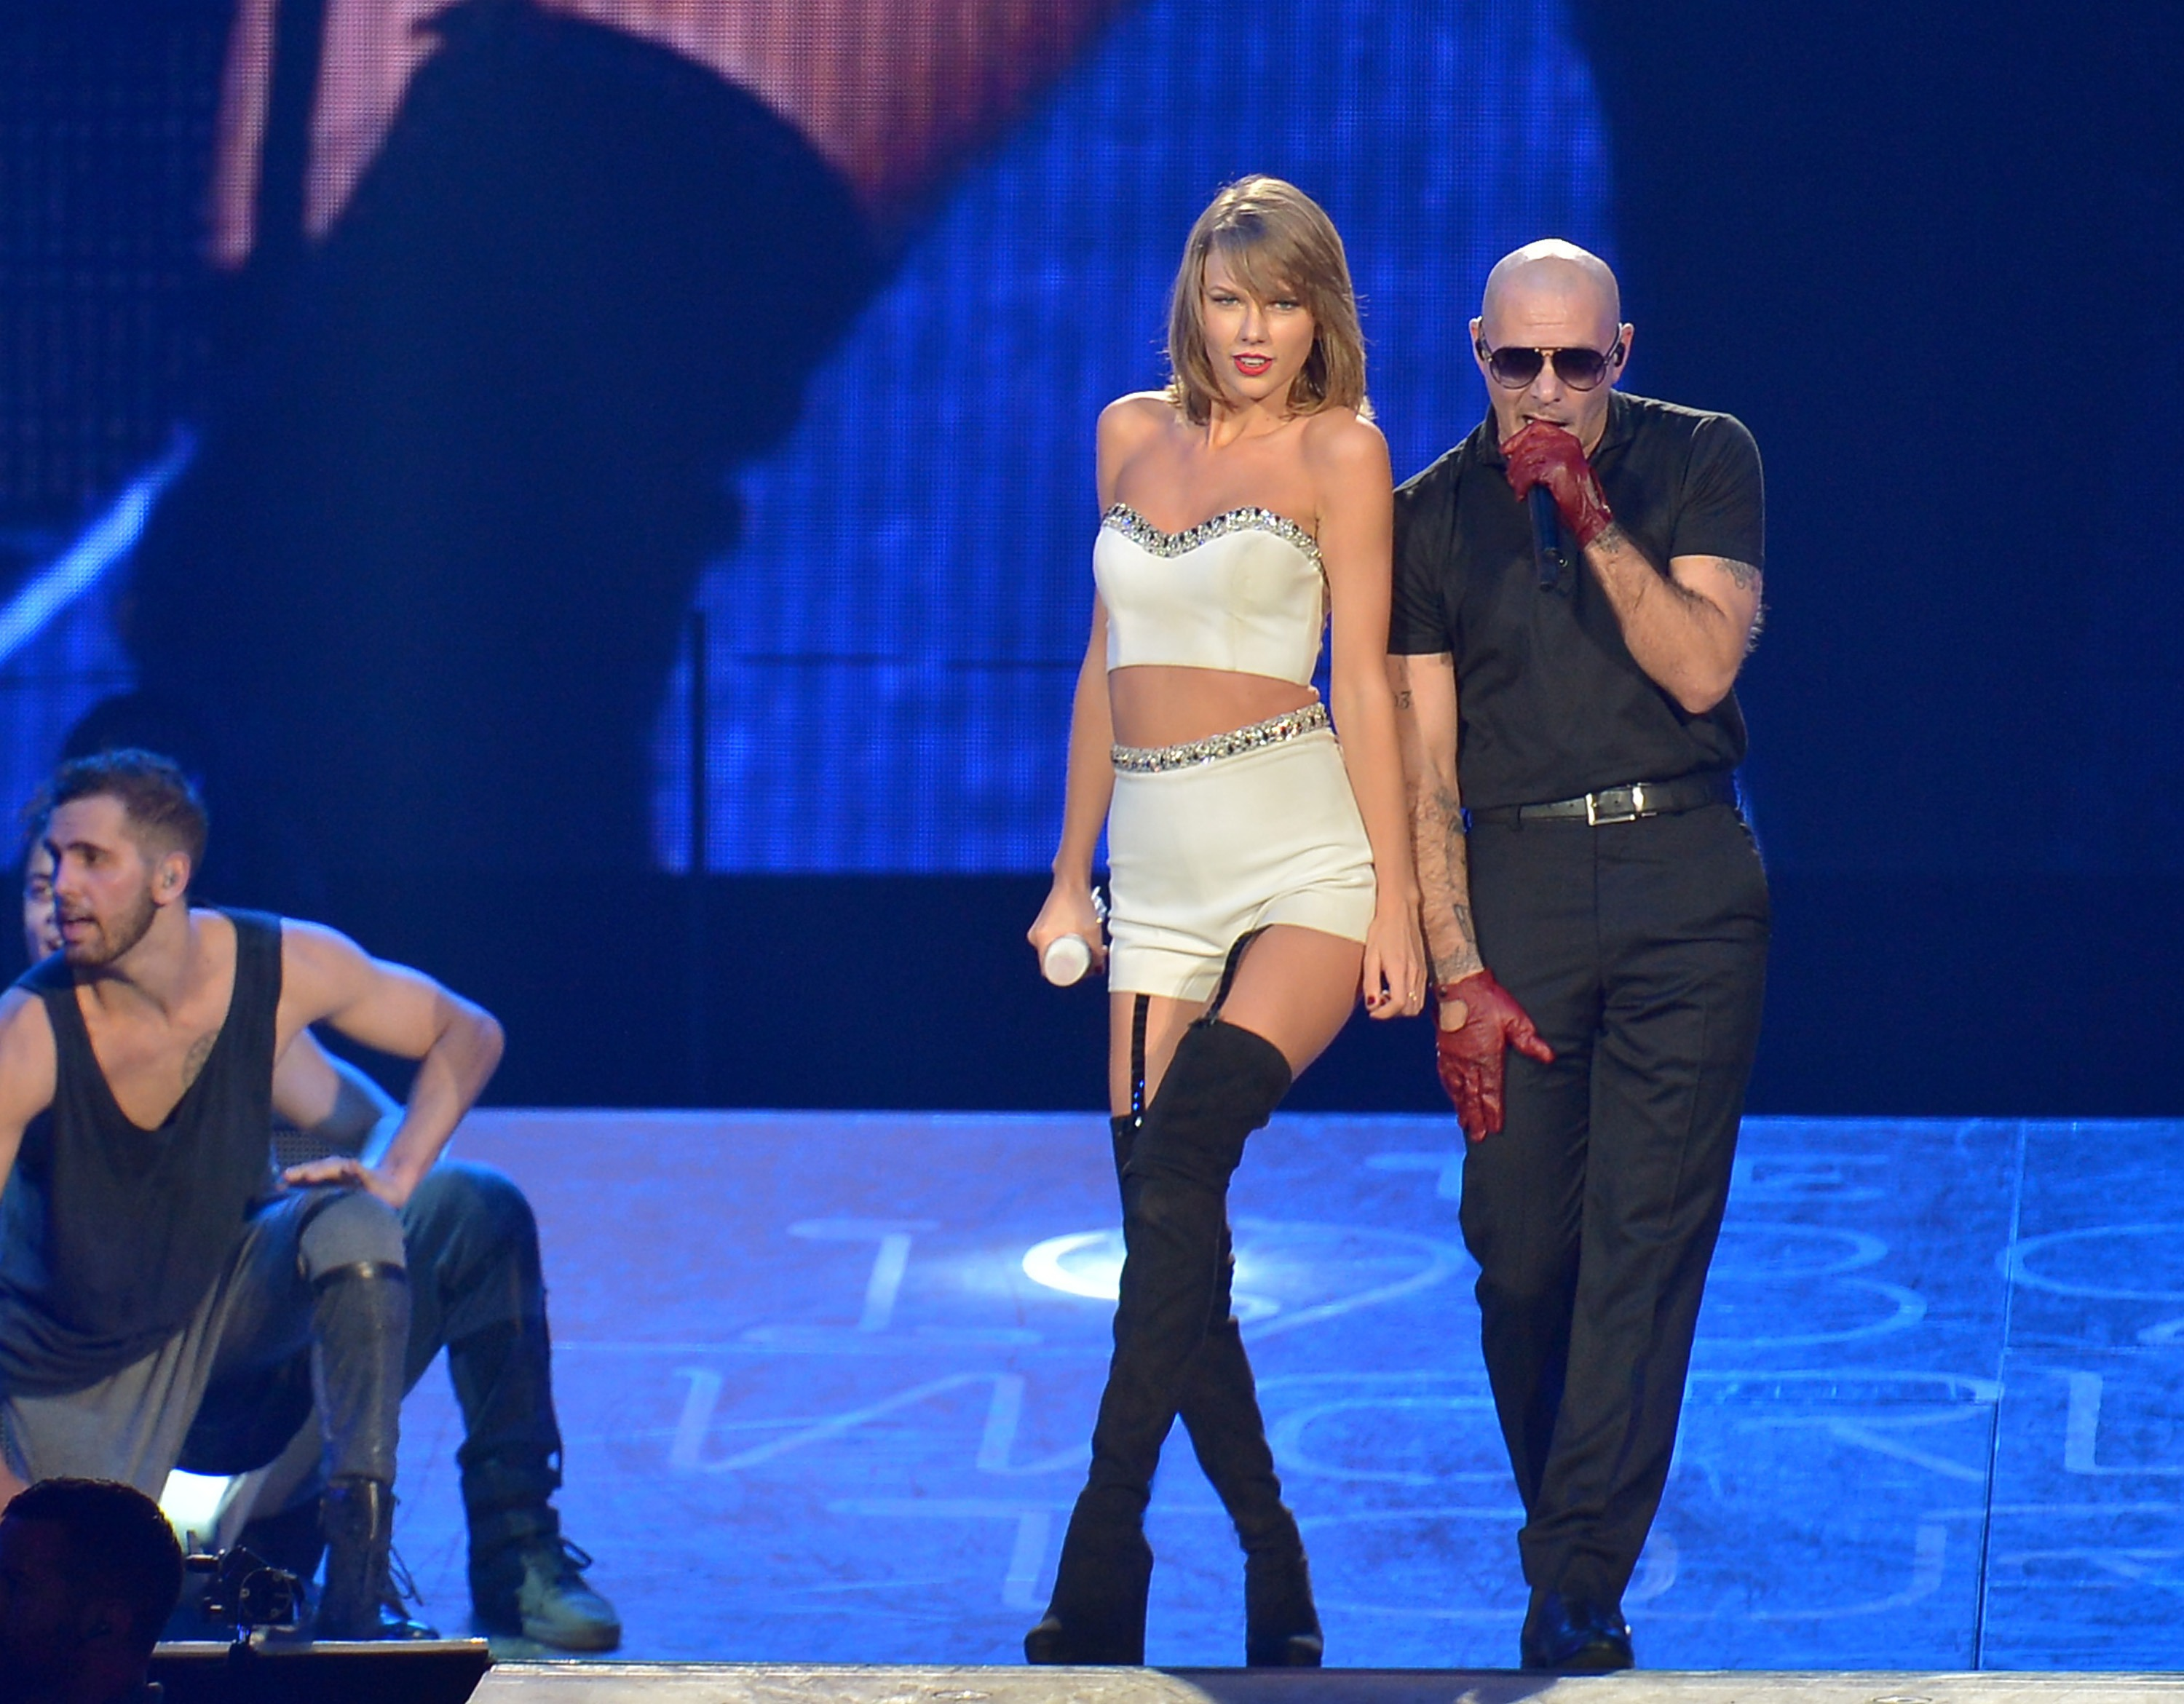 Taylor Swift Added Ricky Martin, Pitbull, and Dwyane Wade To Her 1989 Posse Last Night